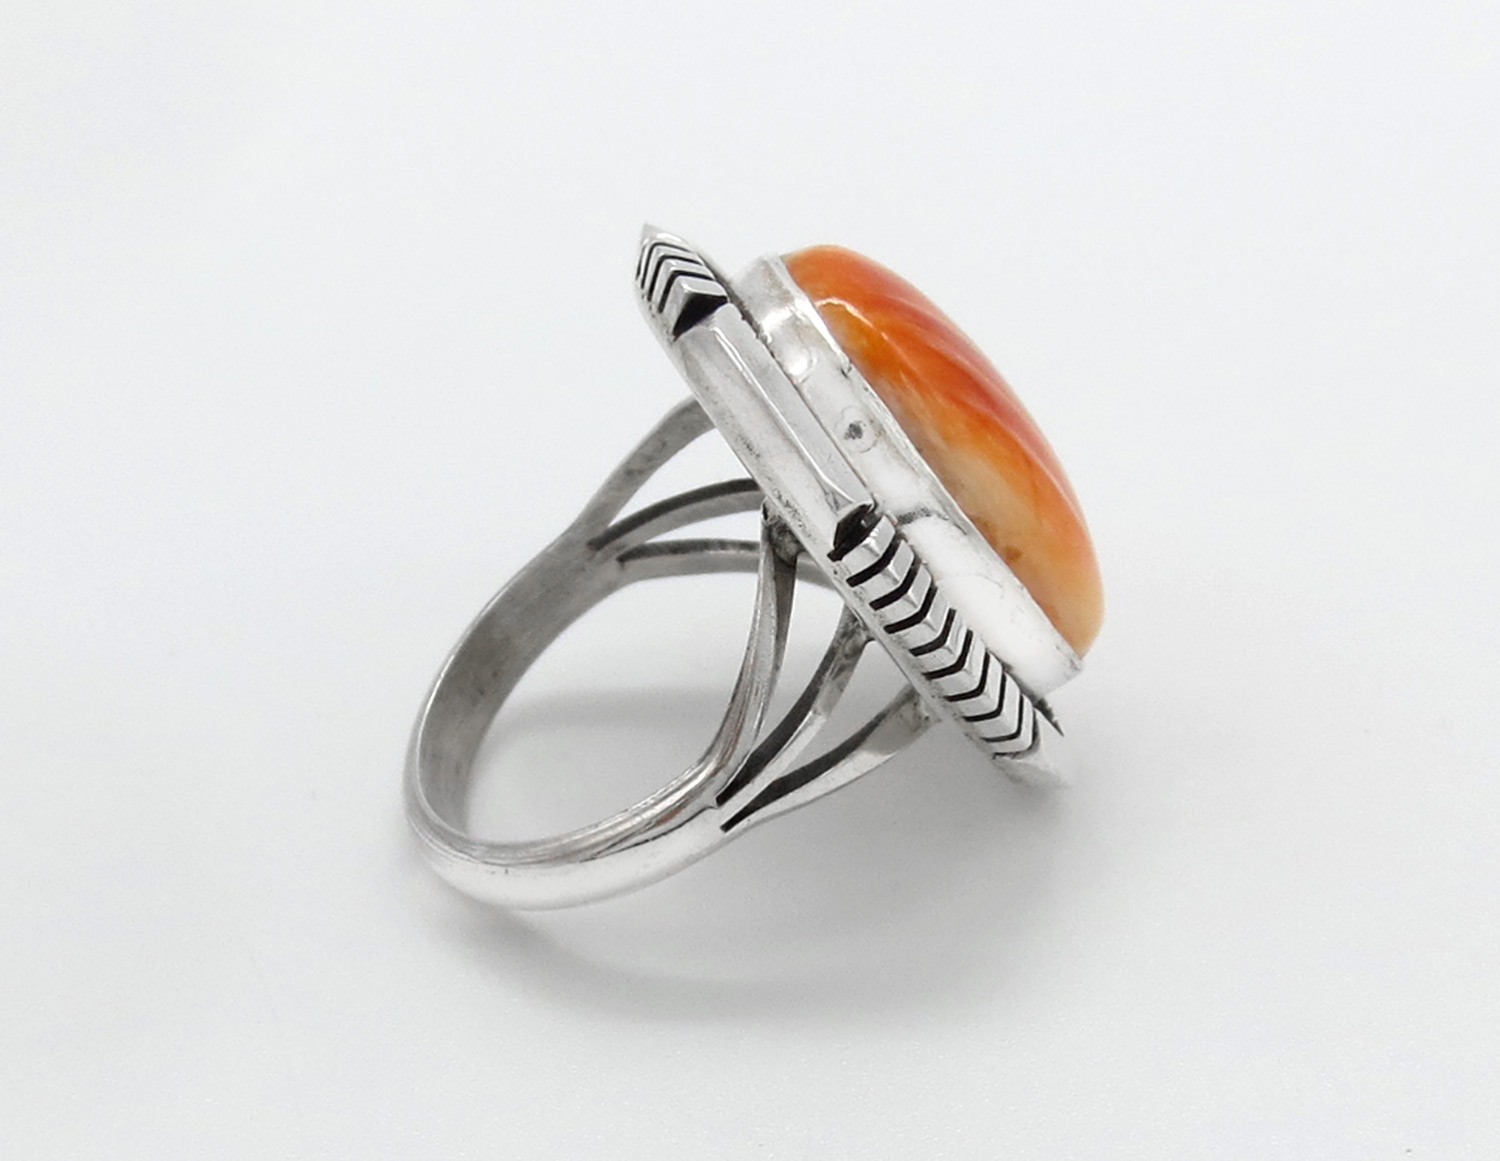 Image 1 of       Orange Spiny Oyster & Sterling Silver Ring Sz 7.5 Navajo Jewelry - 3869dt